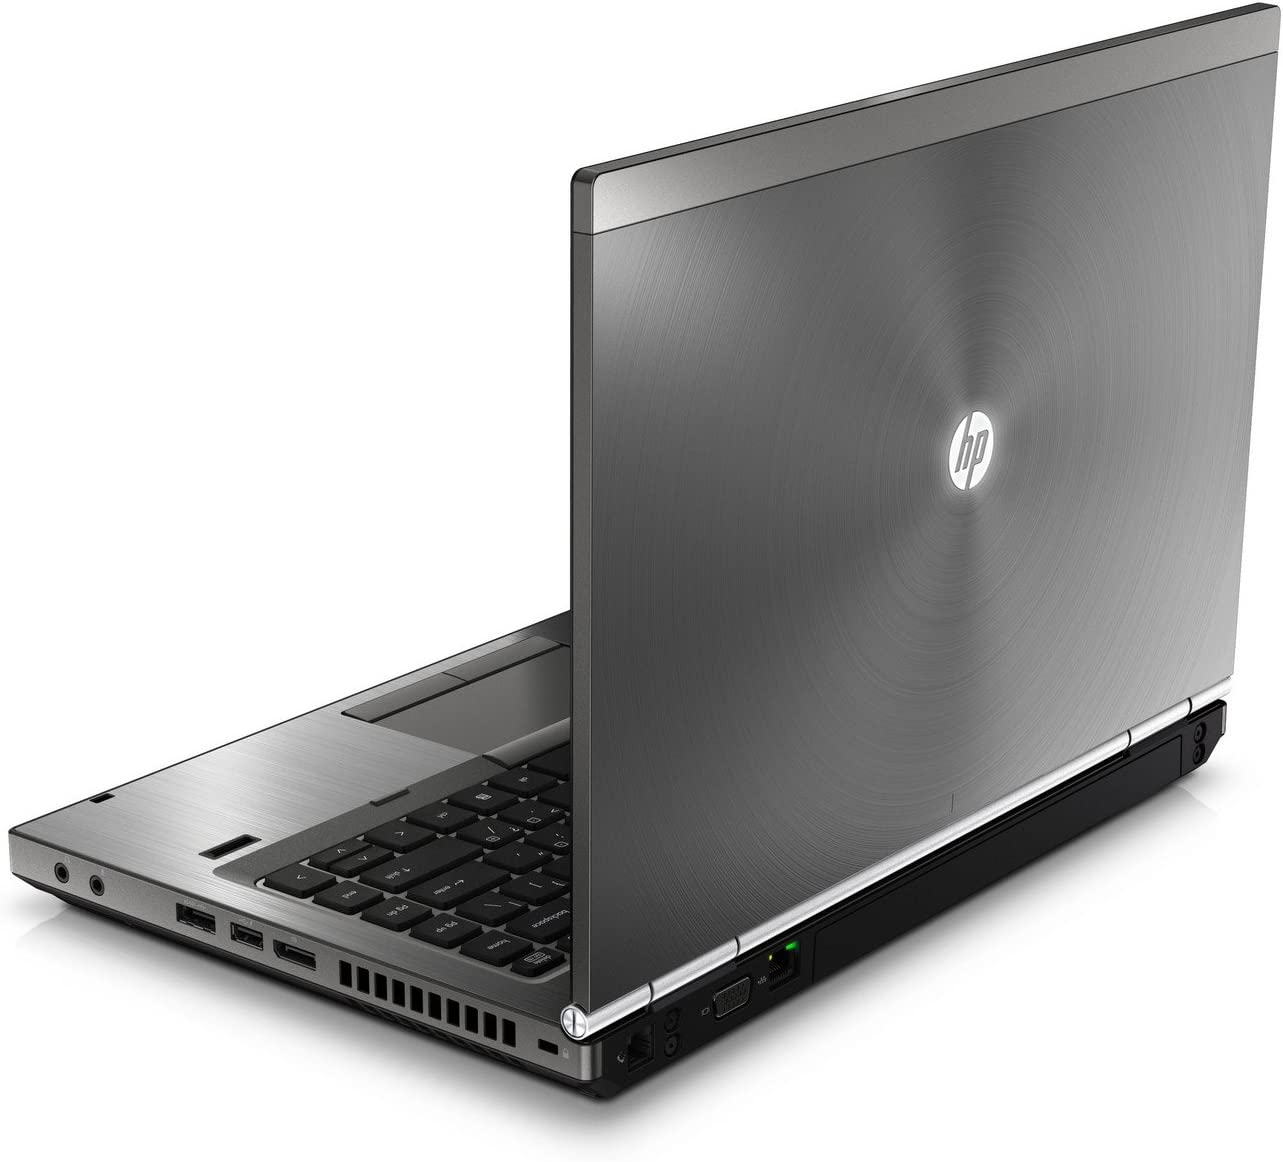 HP EliteBook 8460P 14-inch Notebook PC - Intel Core i5-2520M 2.5GHz 8GB 250GB Windows 10 Professional (Renewed)